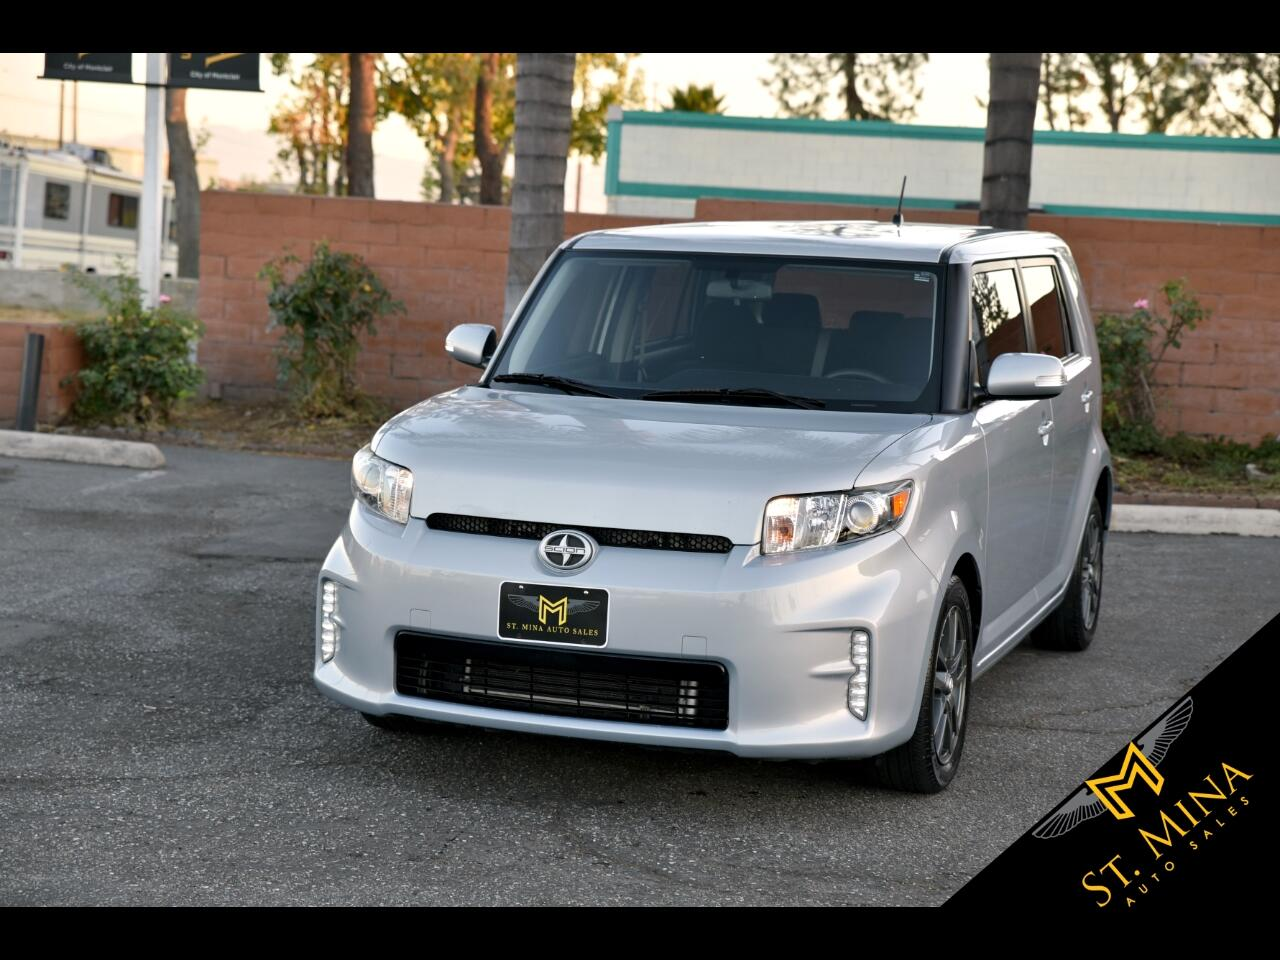 2013 Scion xB Wagon 10-Series